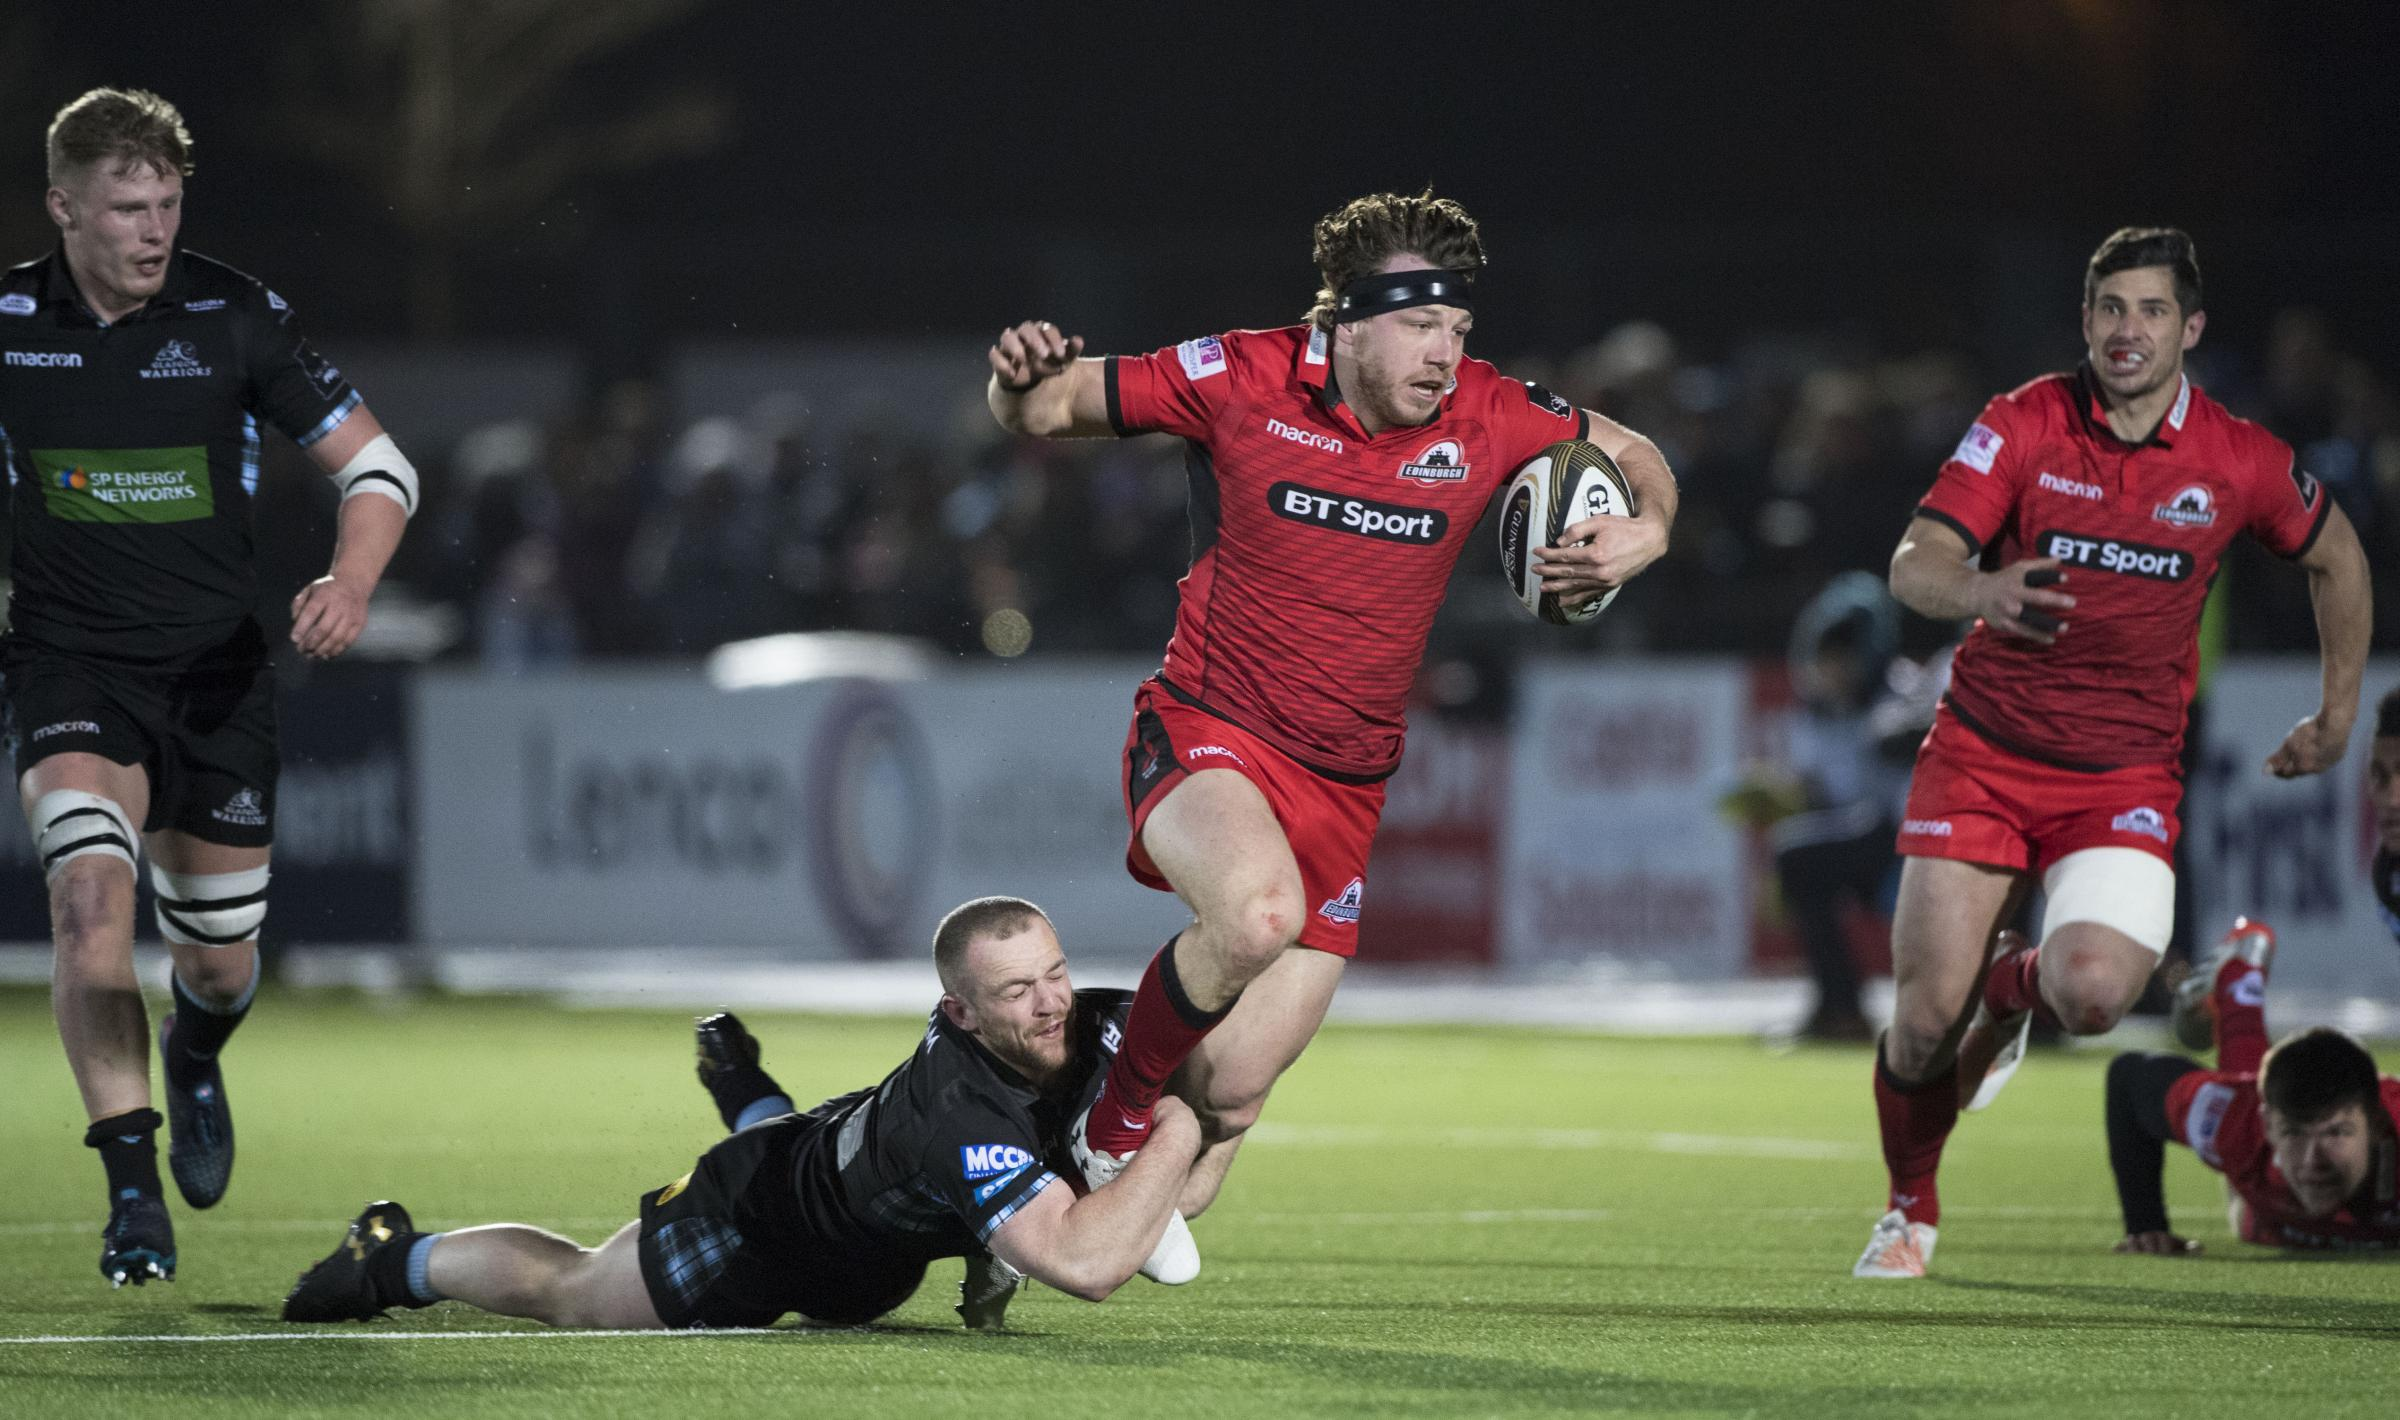 Edinburgh's Hamish Watson in an 1872 Cup encounter last year